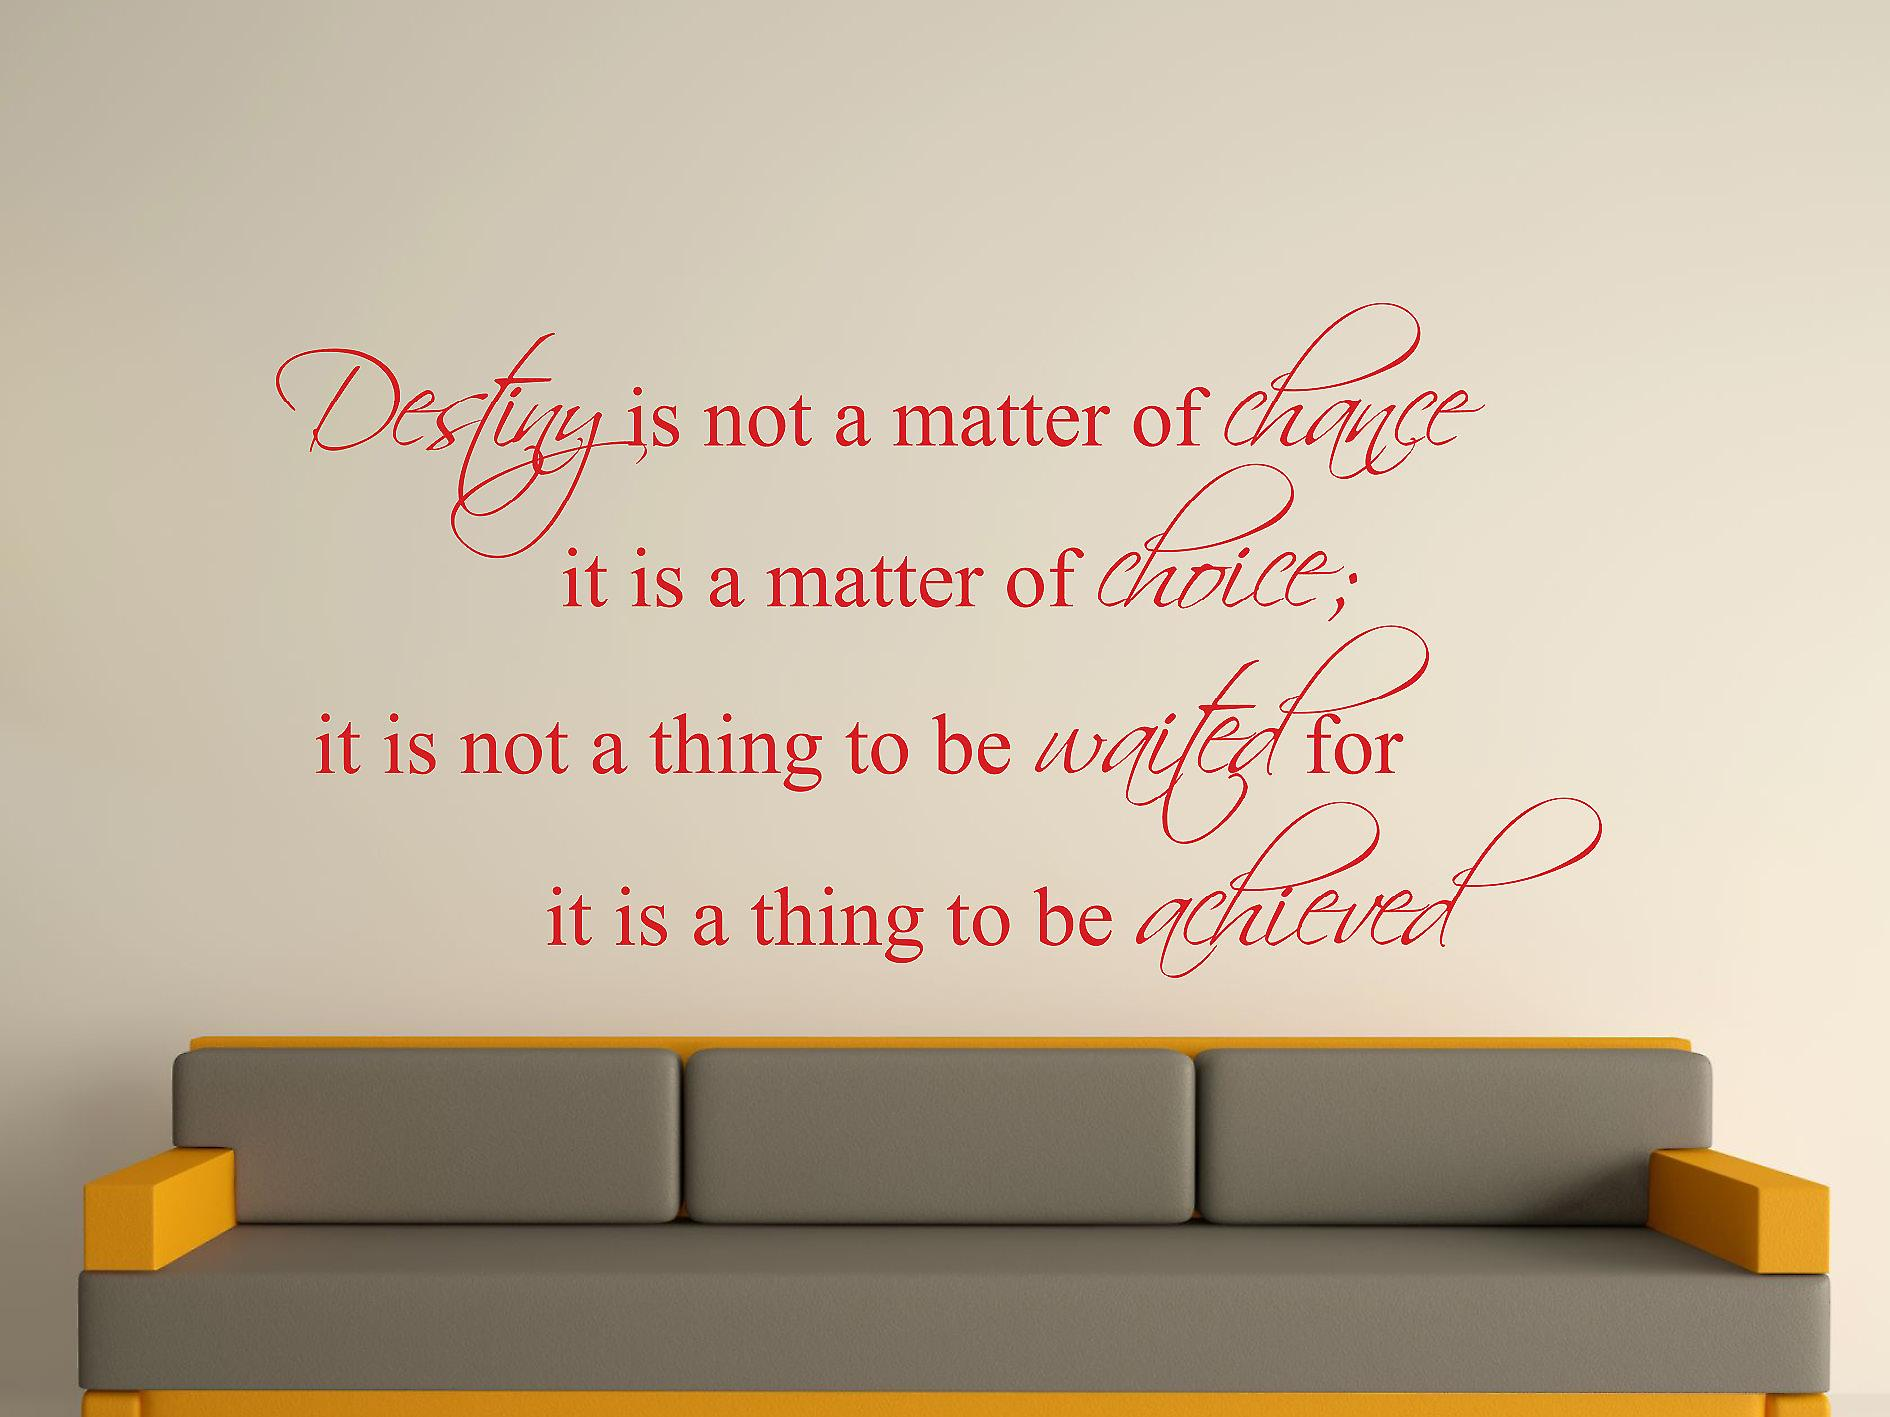 Destiny Is Not A Matter of Chance Wall Art Sticker - Cherry Red